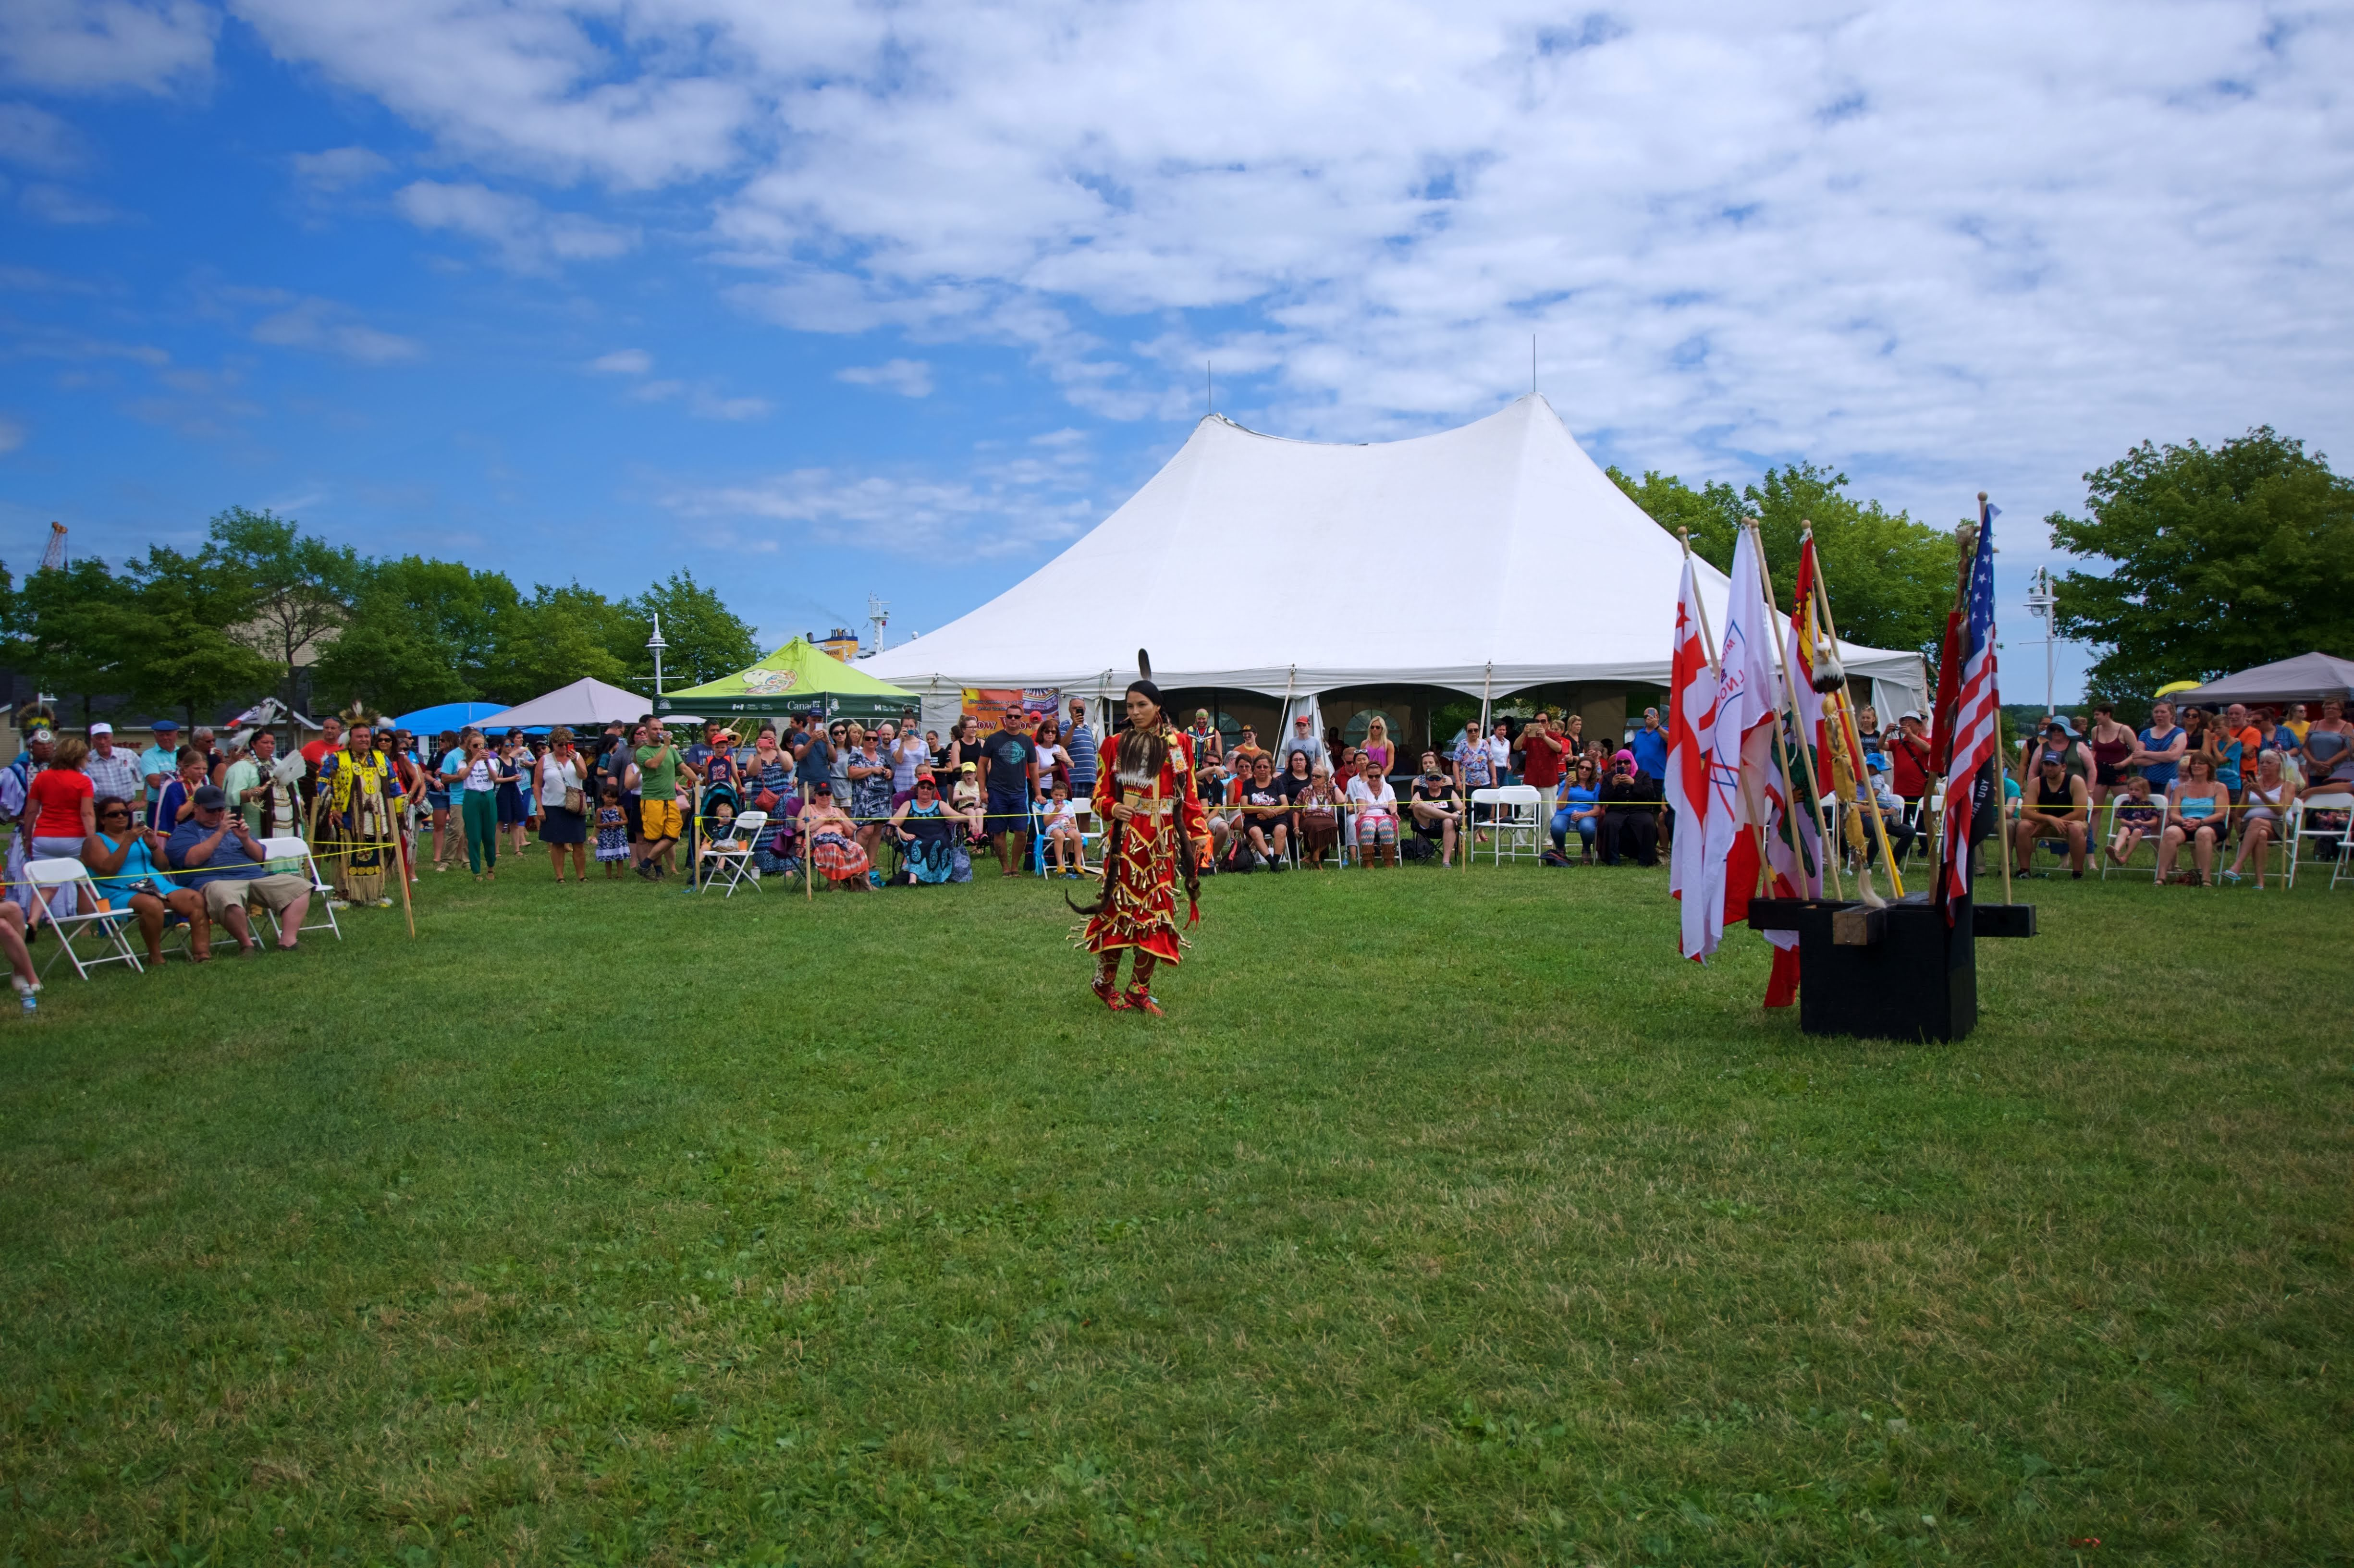 Within Epekwitk (Prince Edward Island) the Mi'kmaq had what are traditionally known as mawi'omi or gatherings, which are commonly known as powwows. The powwow trail begins in Scotchfort, one of the three Abegweit First Nation reserves, at the beginning of June. ​The Mi'kmaq Confederacy of P.E.I. powwow (shown here) was at the Confederation Landing Park on Aug. 14 and 15. (Patricia Bourque)